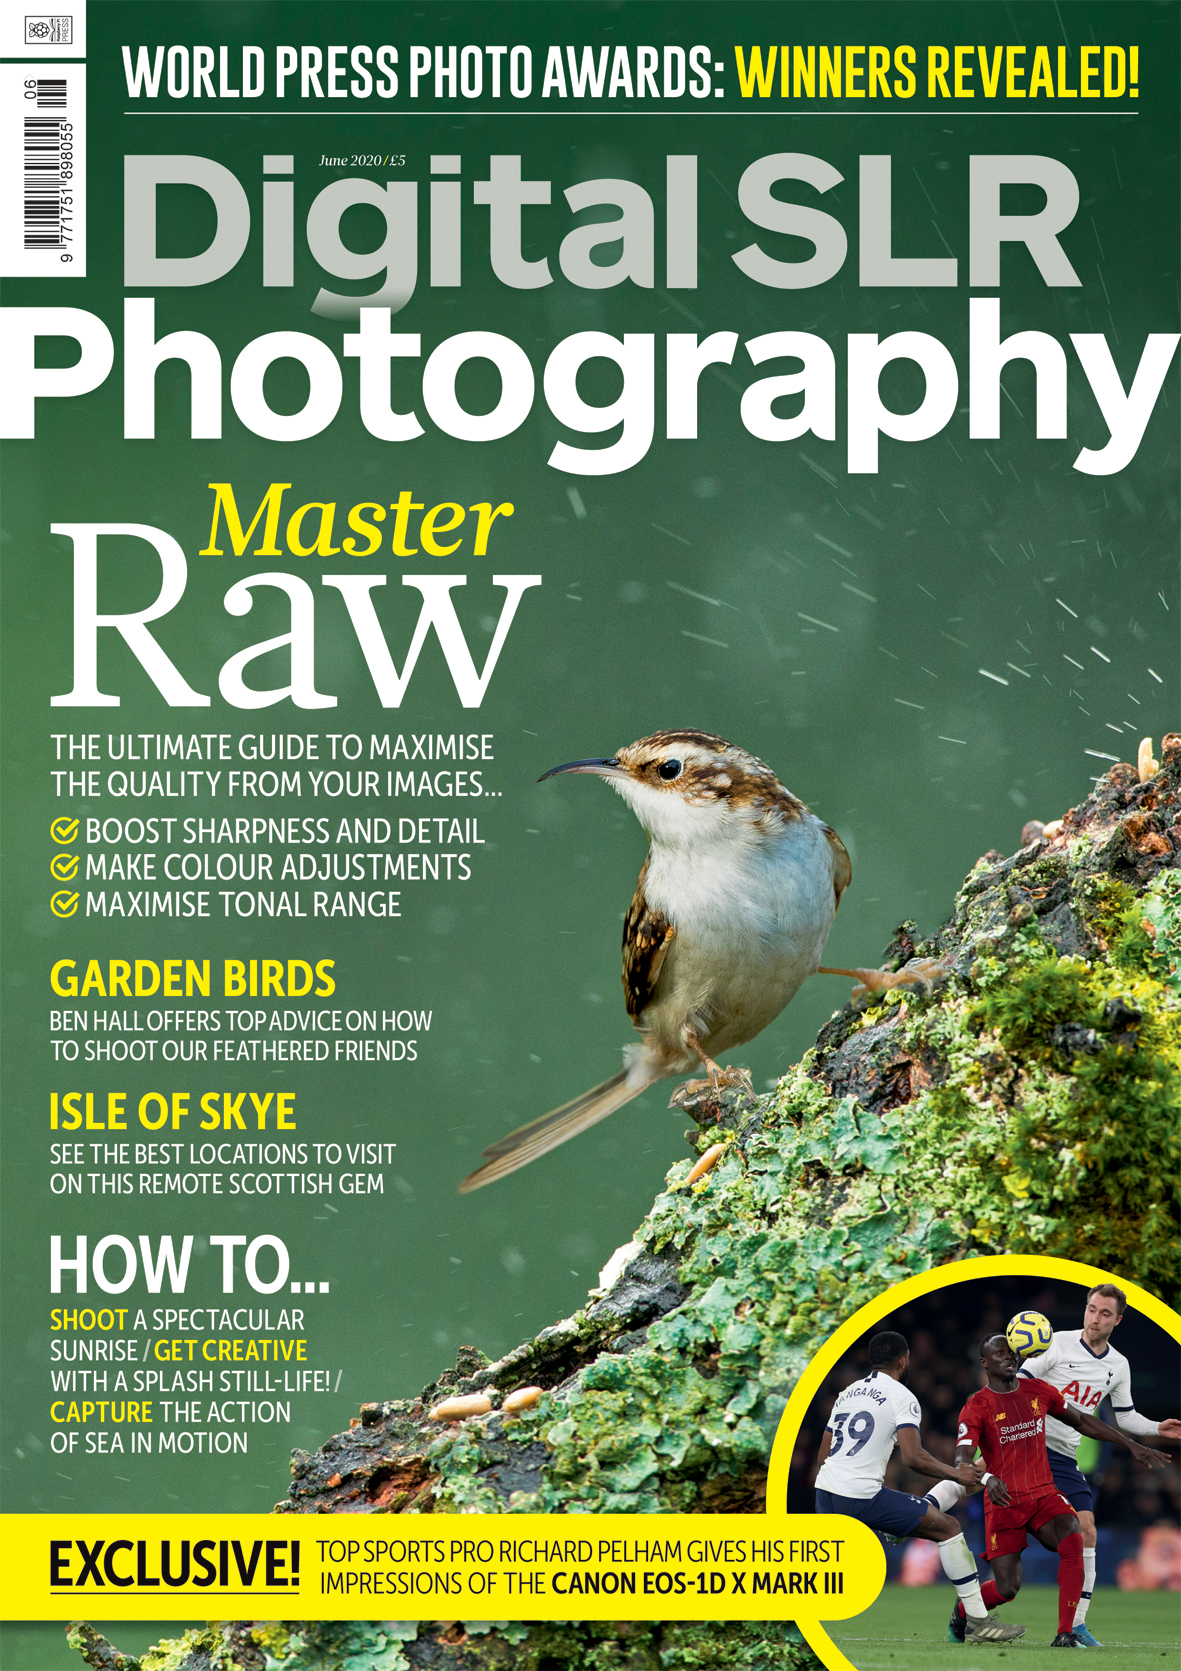 Digital SLR Photography issue 163 cover